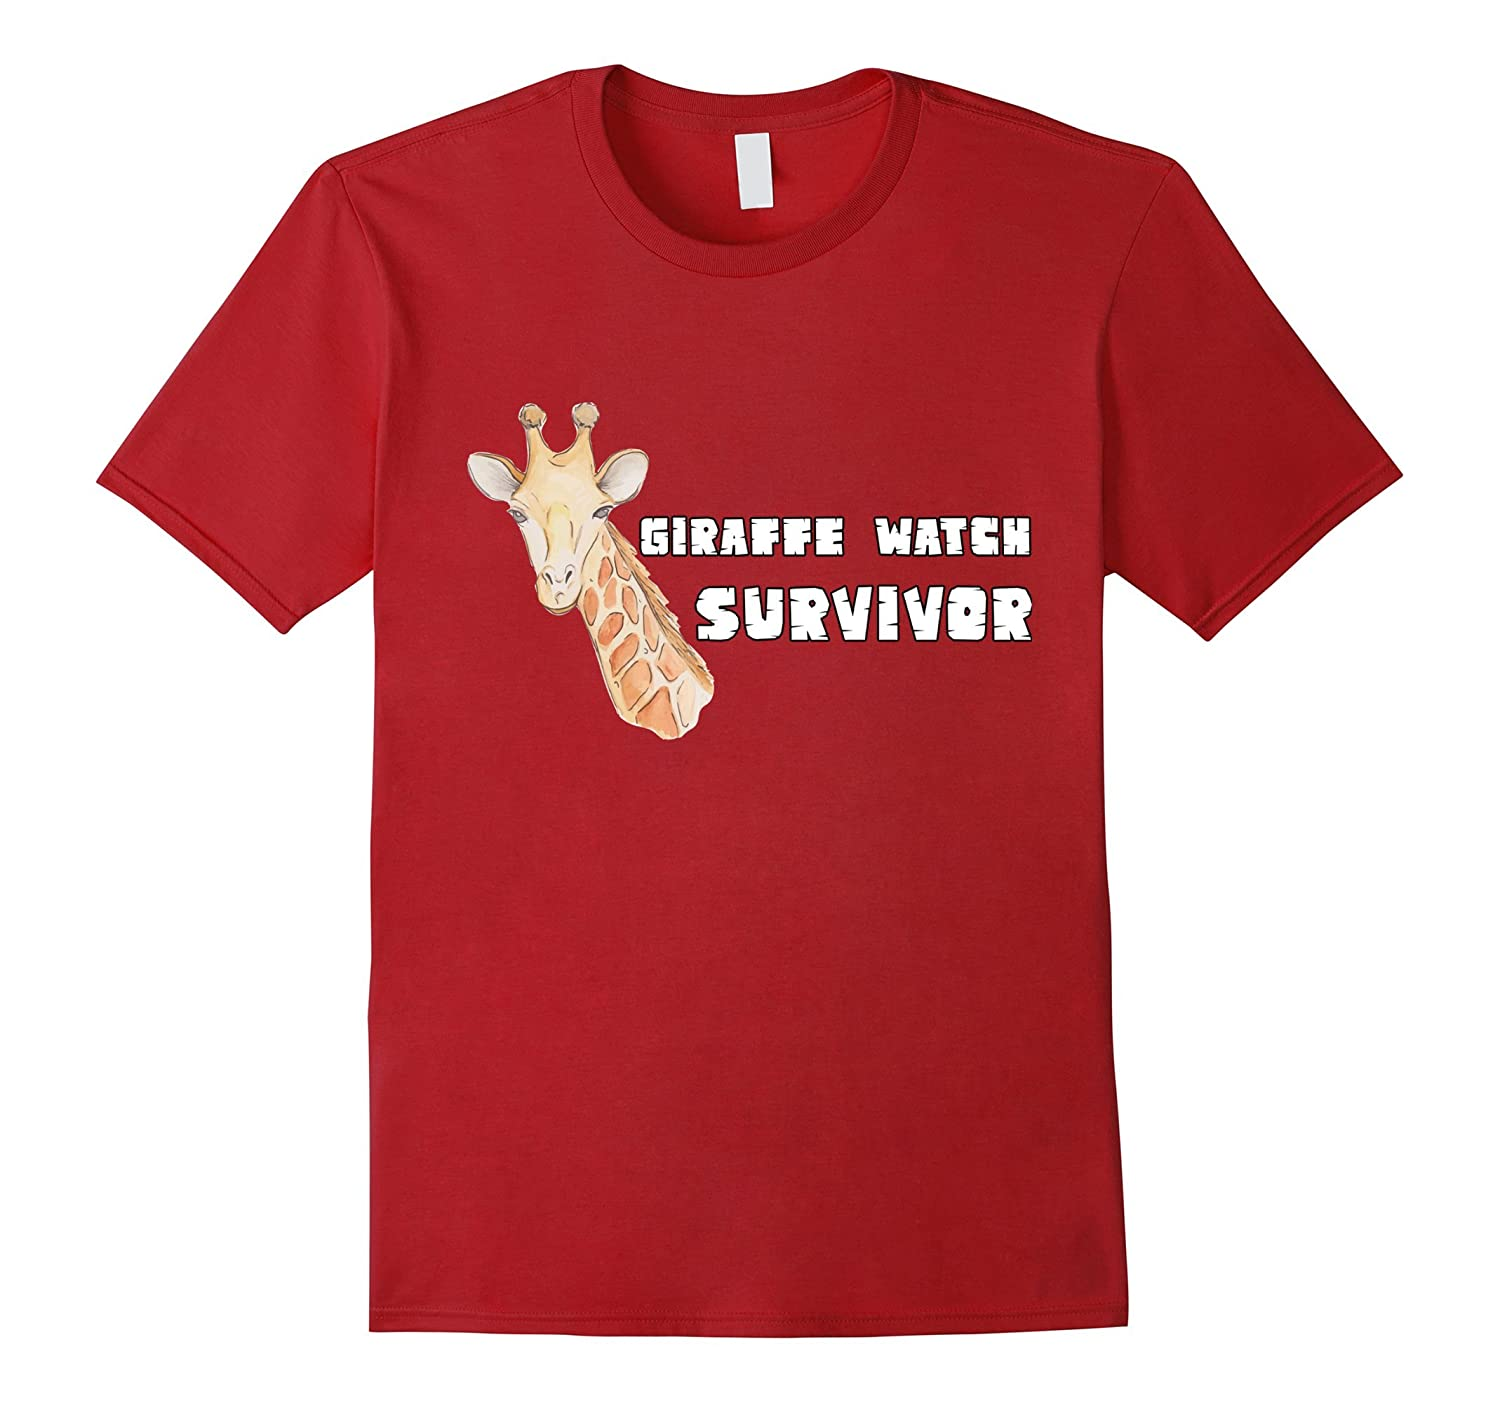 April The Giraffe Watch Survivor T-Shirt Giraffe Joke Tee-CD